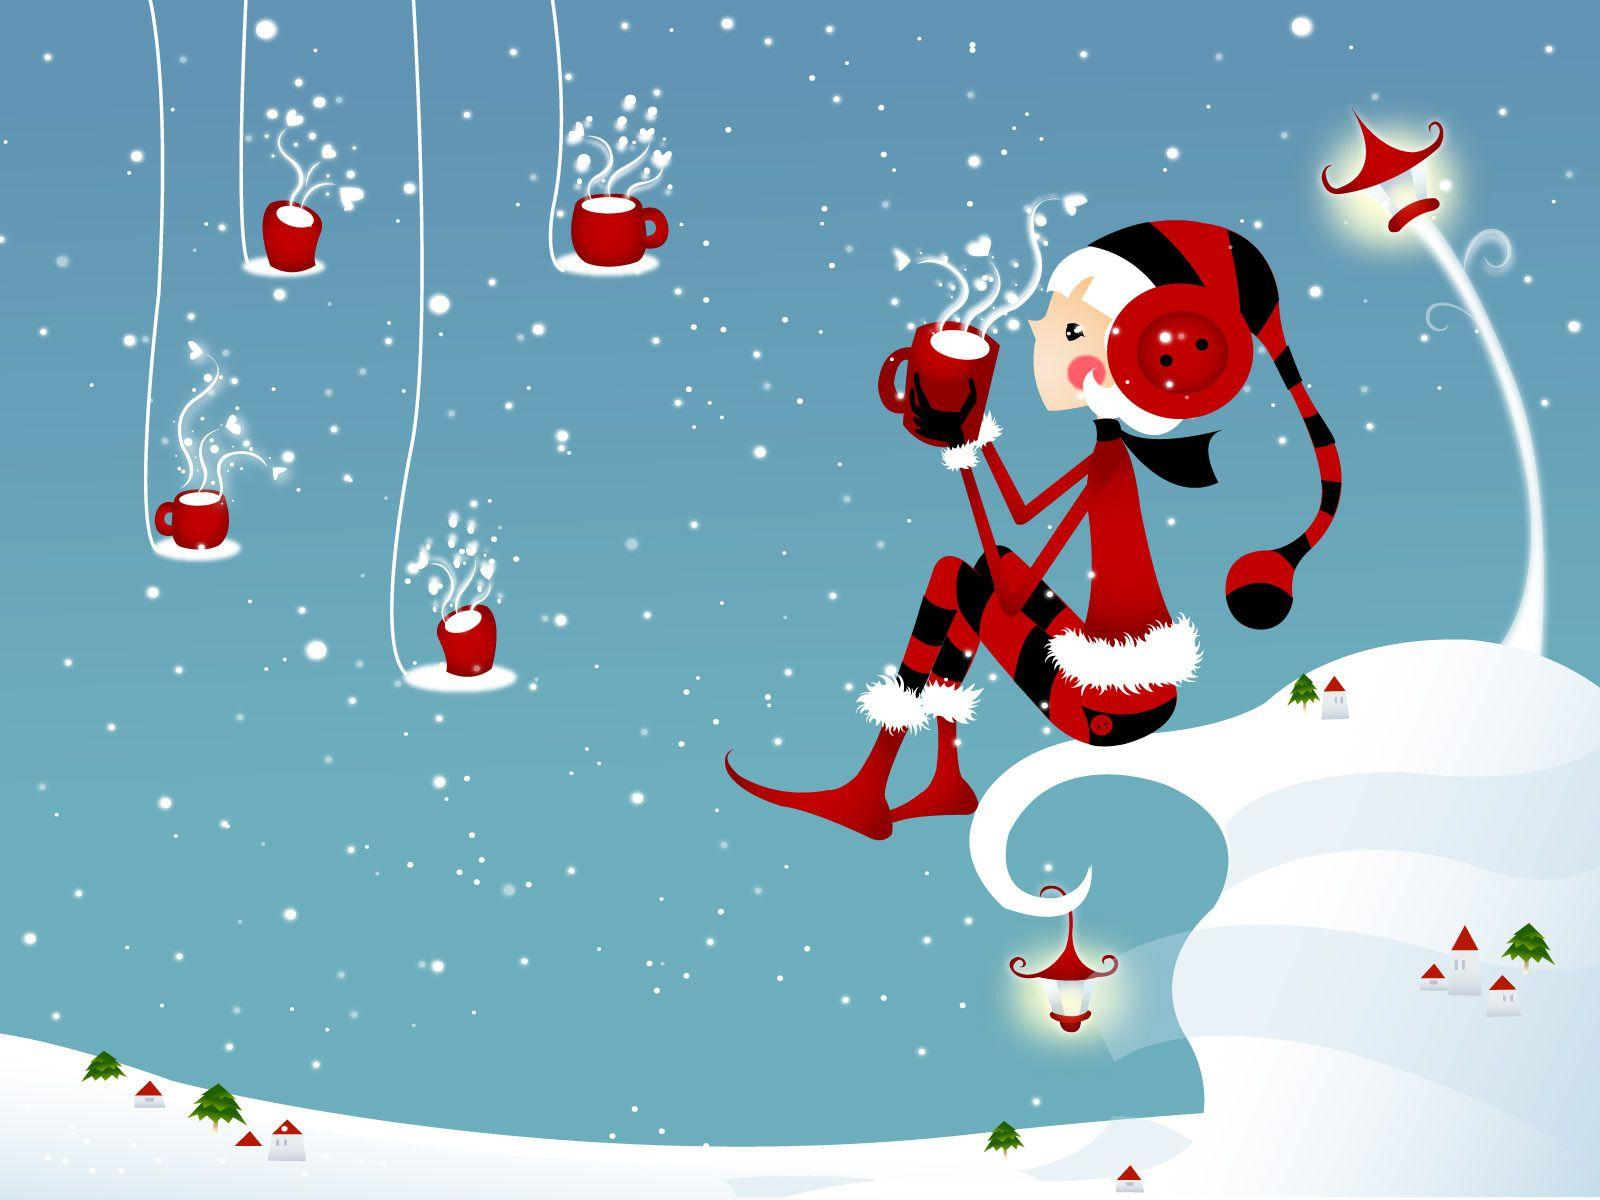 Xmas Love Wallpapers : cute christmas Desktop Backgrounds - Wallpaper cave